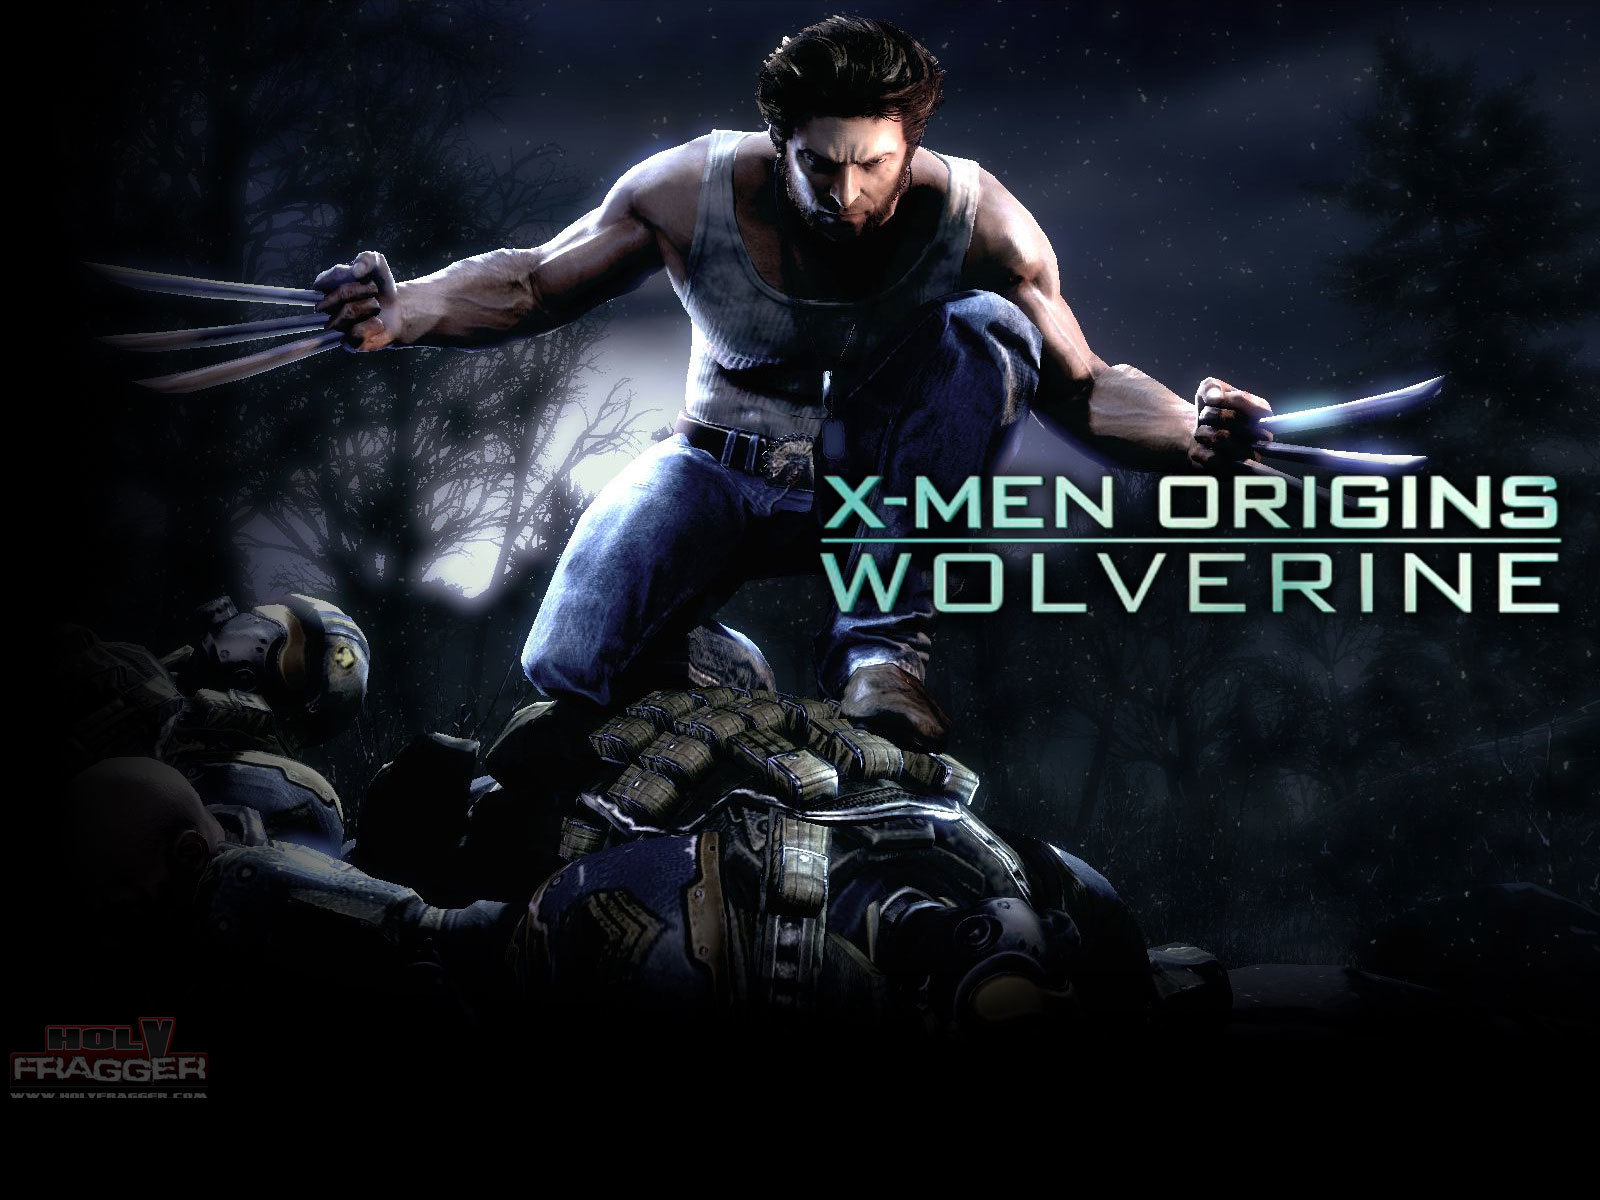 X-Men wolverine xmen origins HD Wallpaper